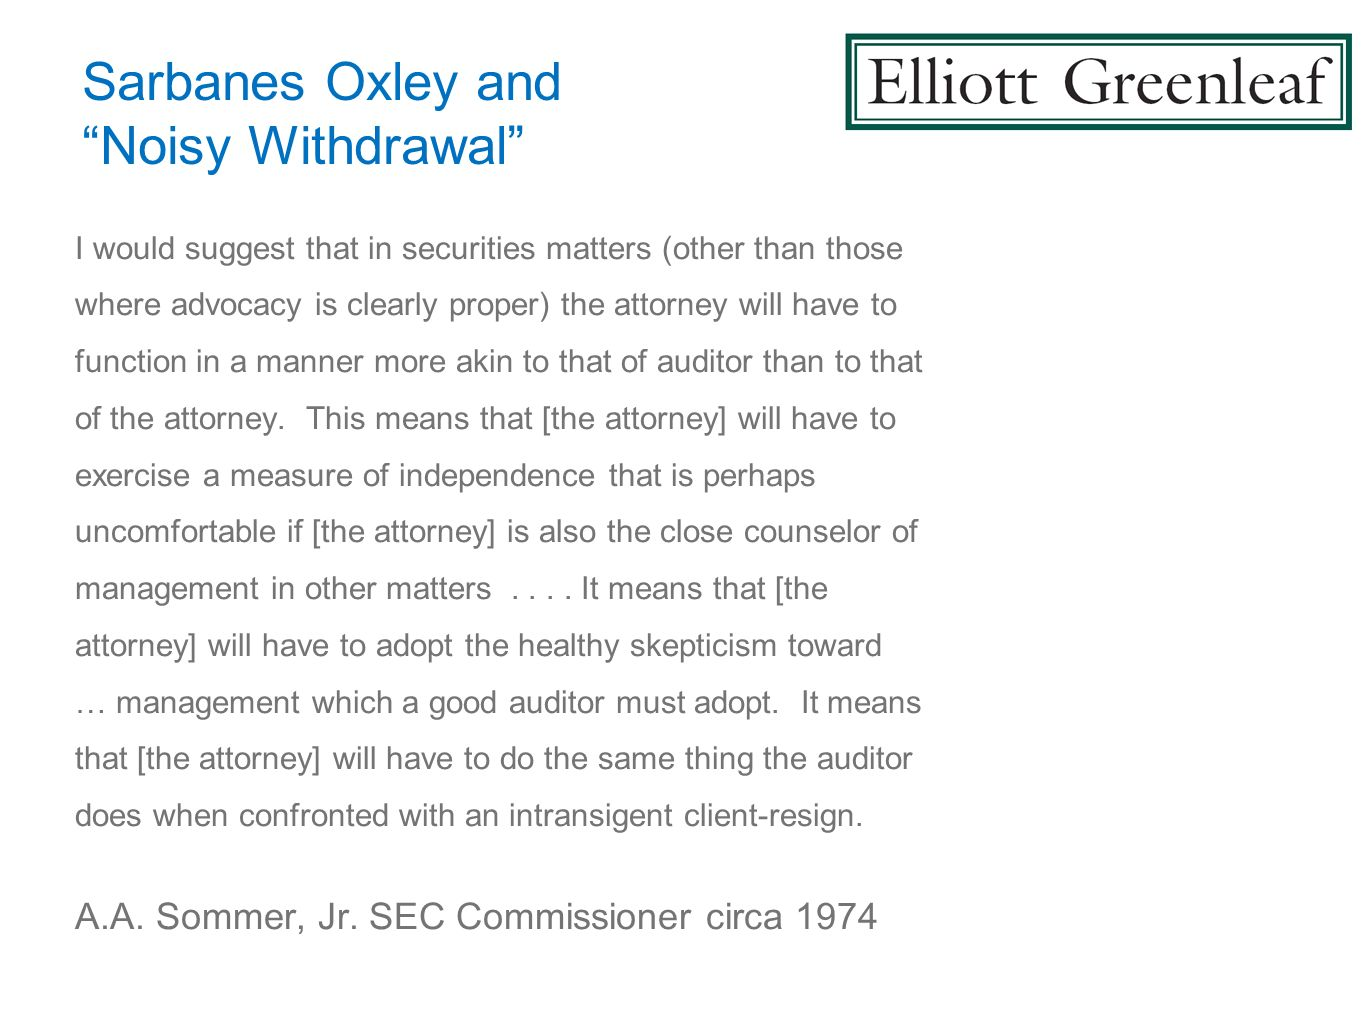 Sarbanes Oxley and Noisy Withdrawal